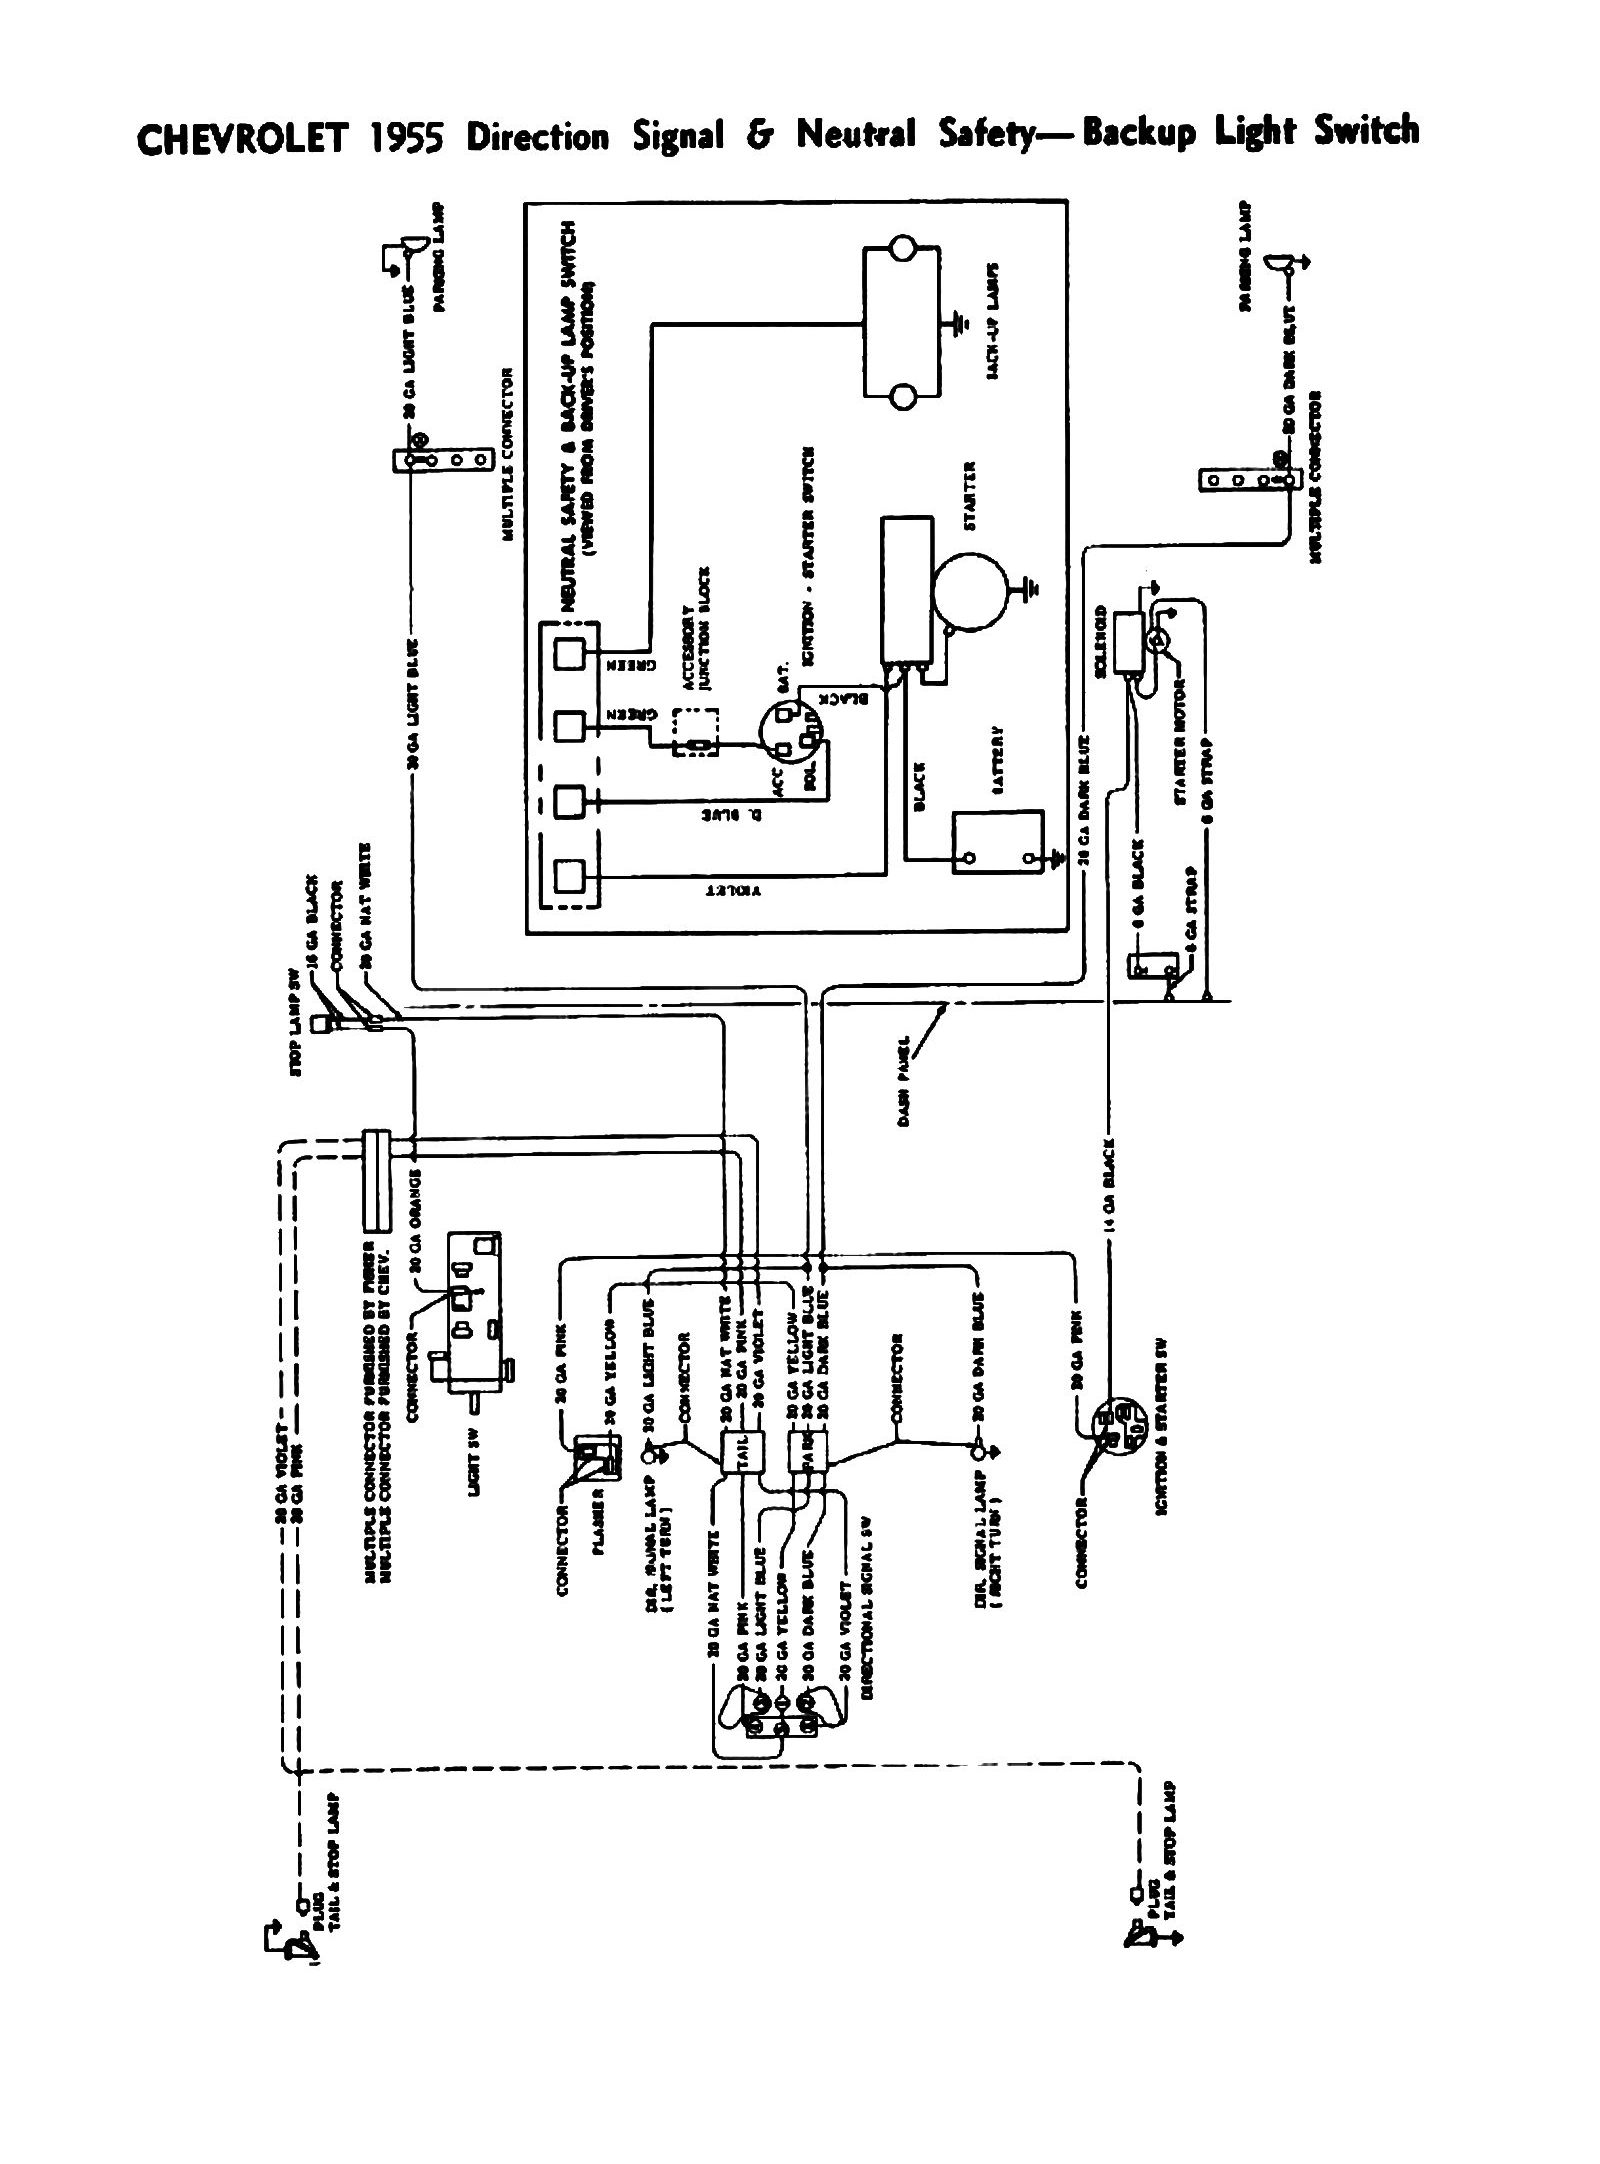 55signal chevy wiring diagrams chevy starter wiring diagram at crackthecode.co